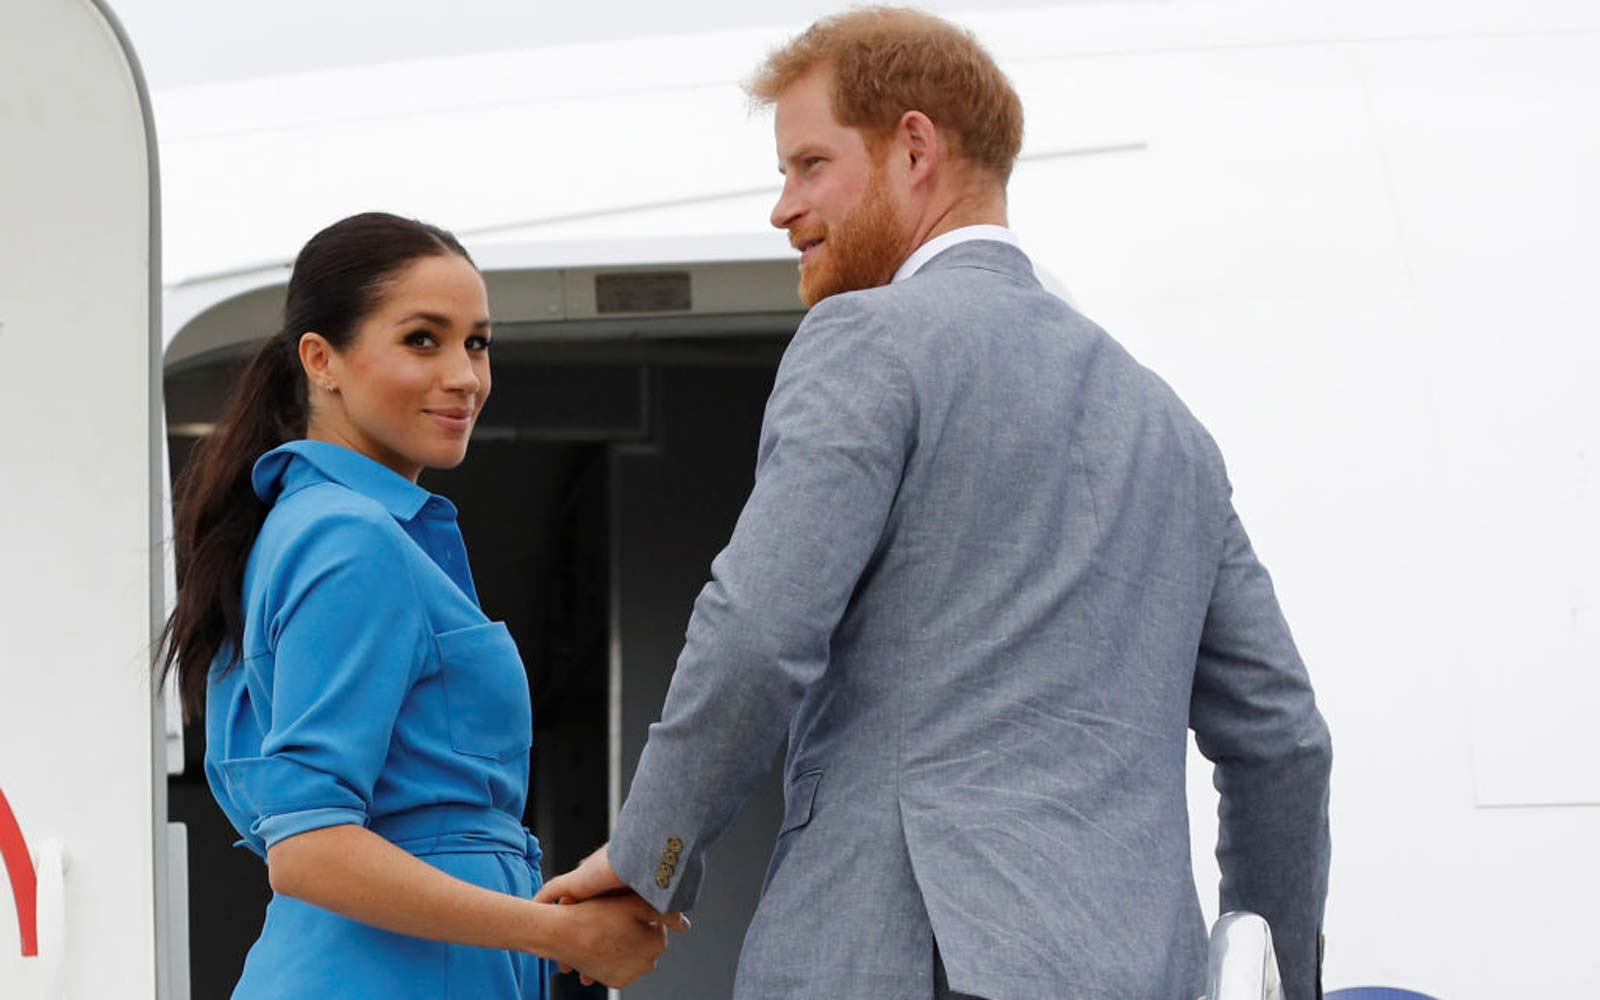 Prince Harry and Meghan Markle's Plane Aborted Its Landing Seconds Before Reaching Sydney